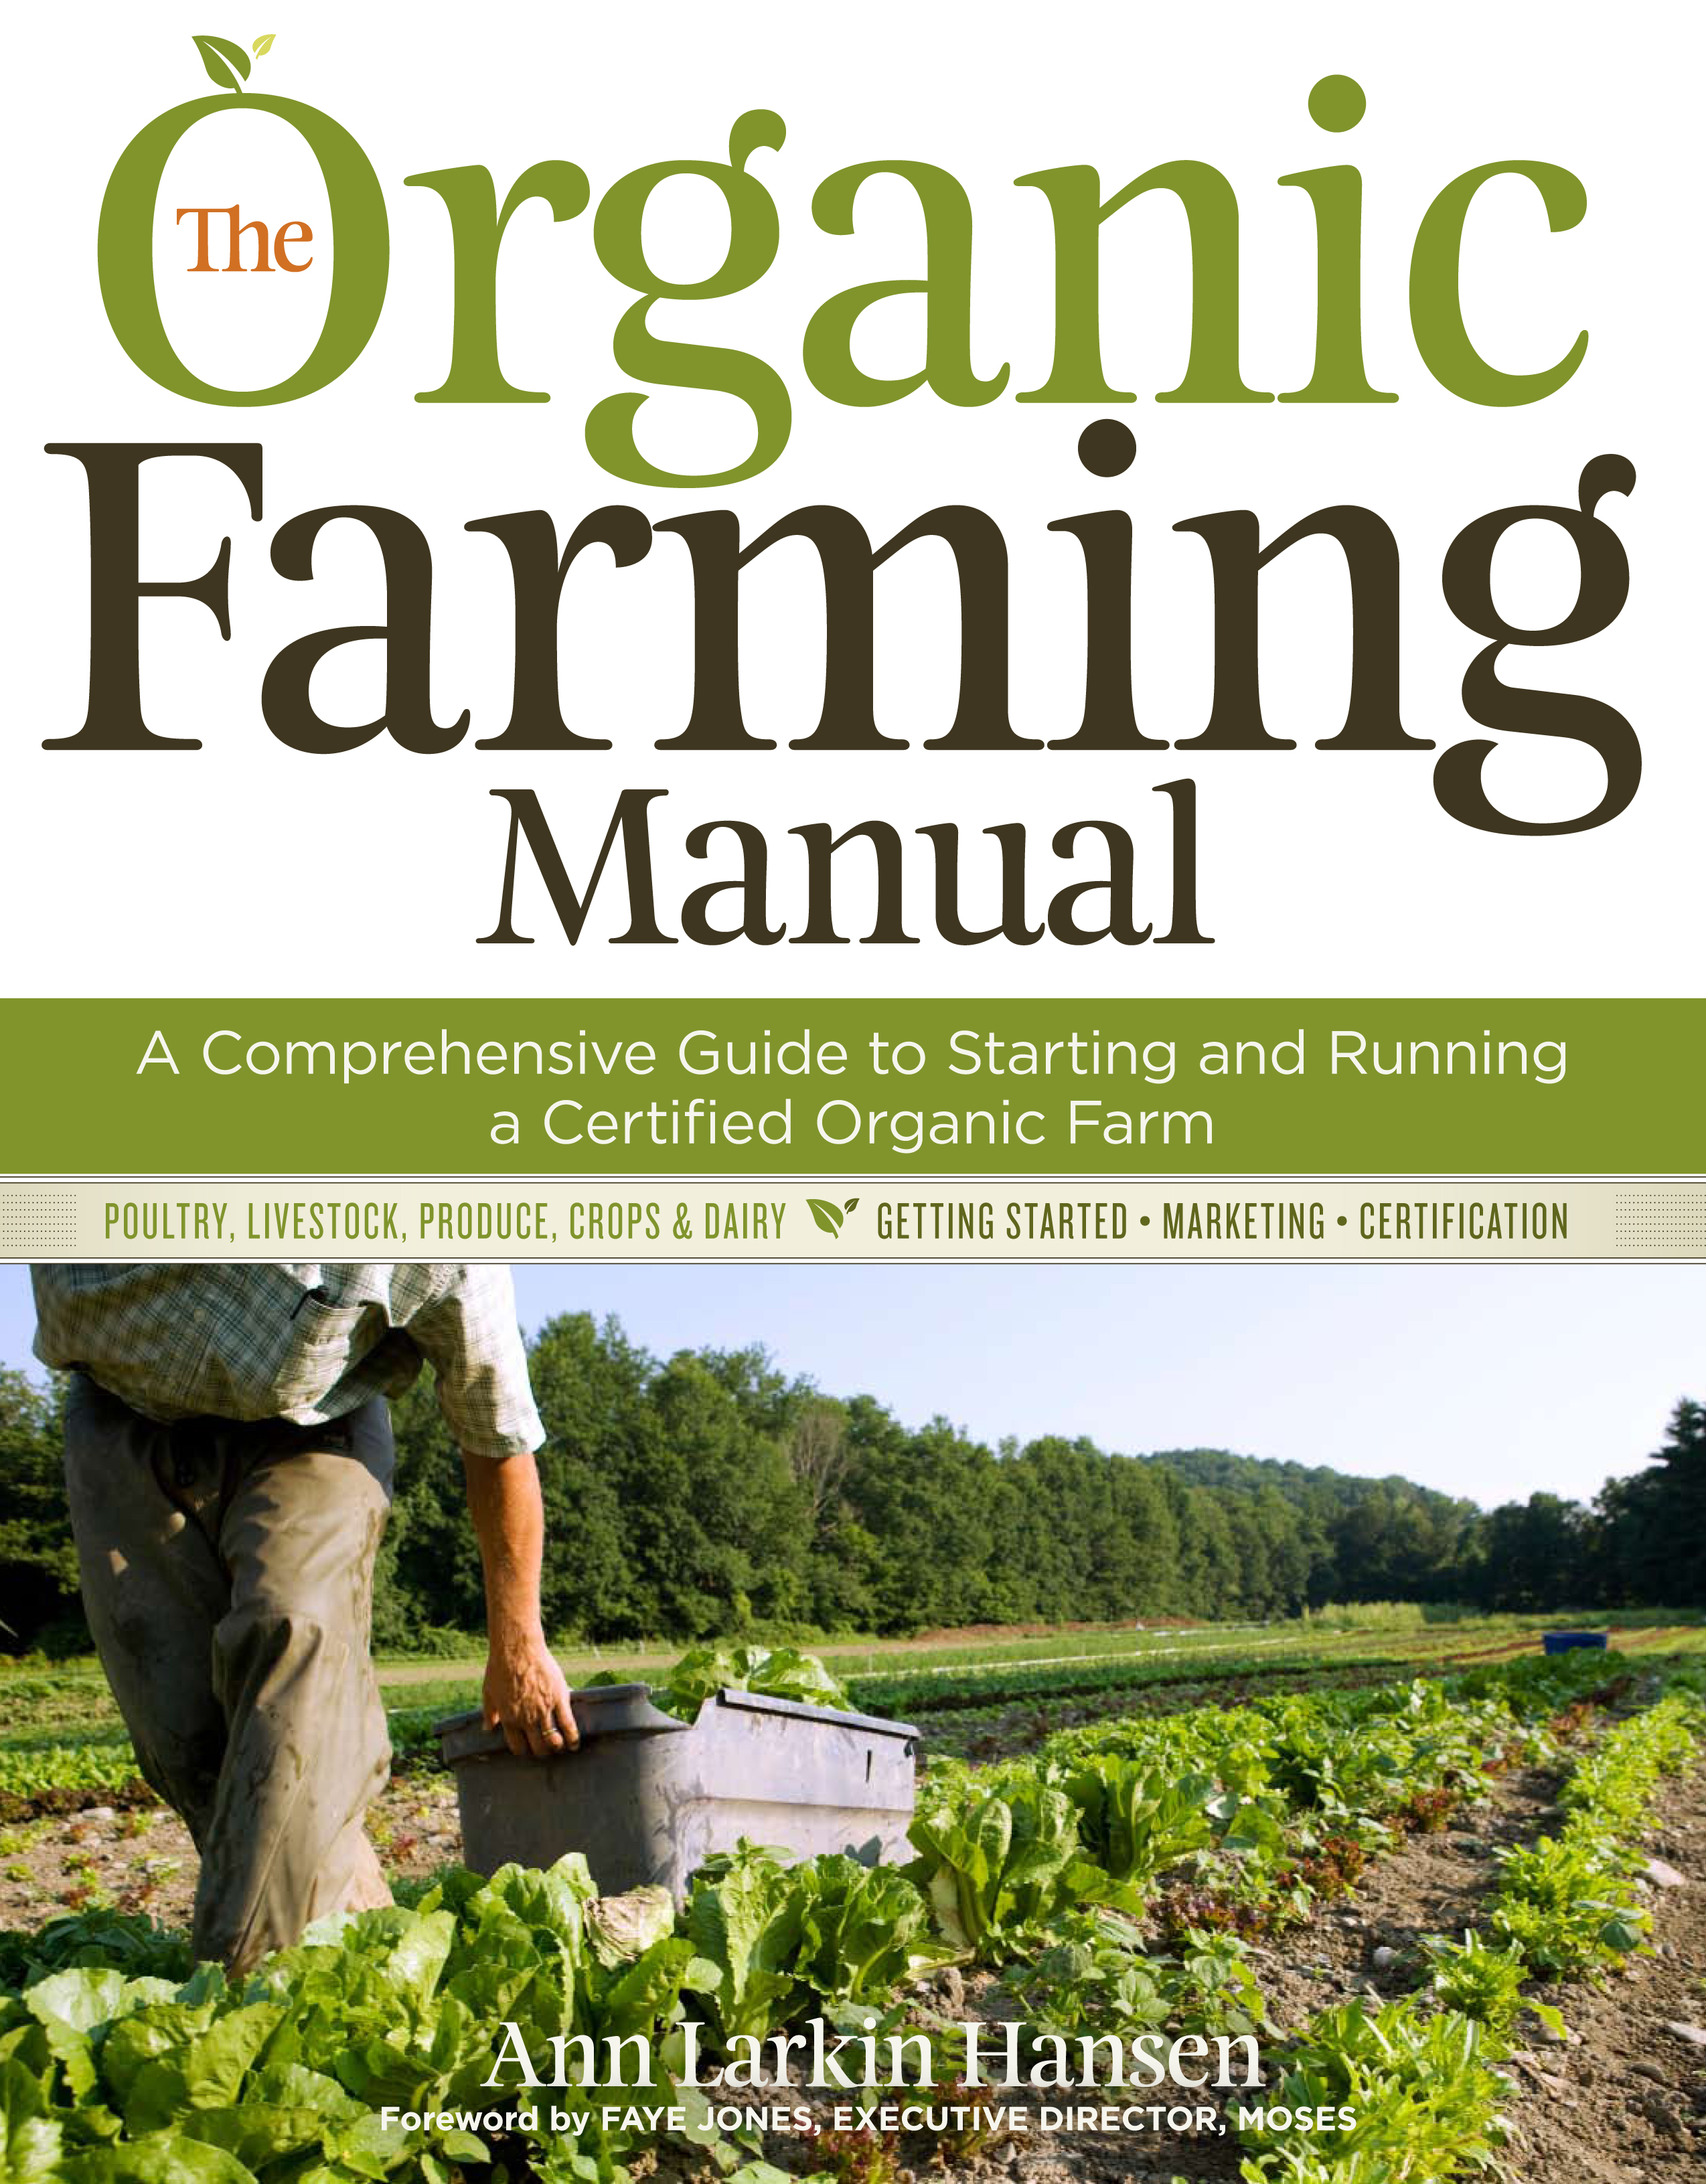 The Organic Farming Manual A Comprehensive Guide to Starting and Running a Certified Organic Farm - Ann Larkin Hansen